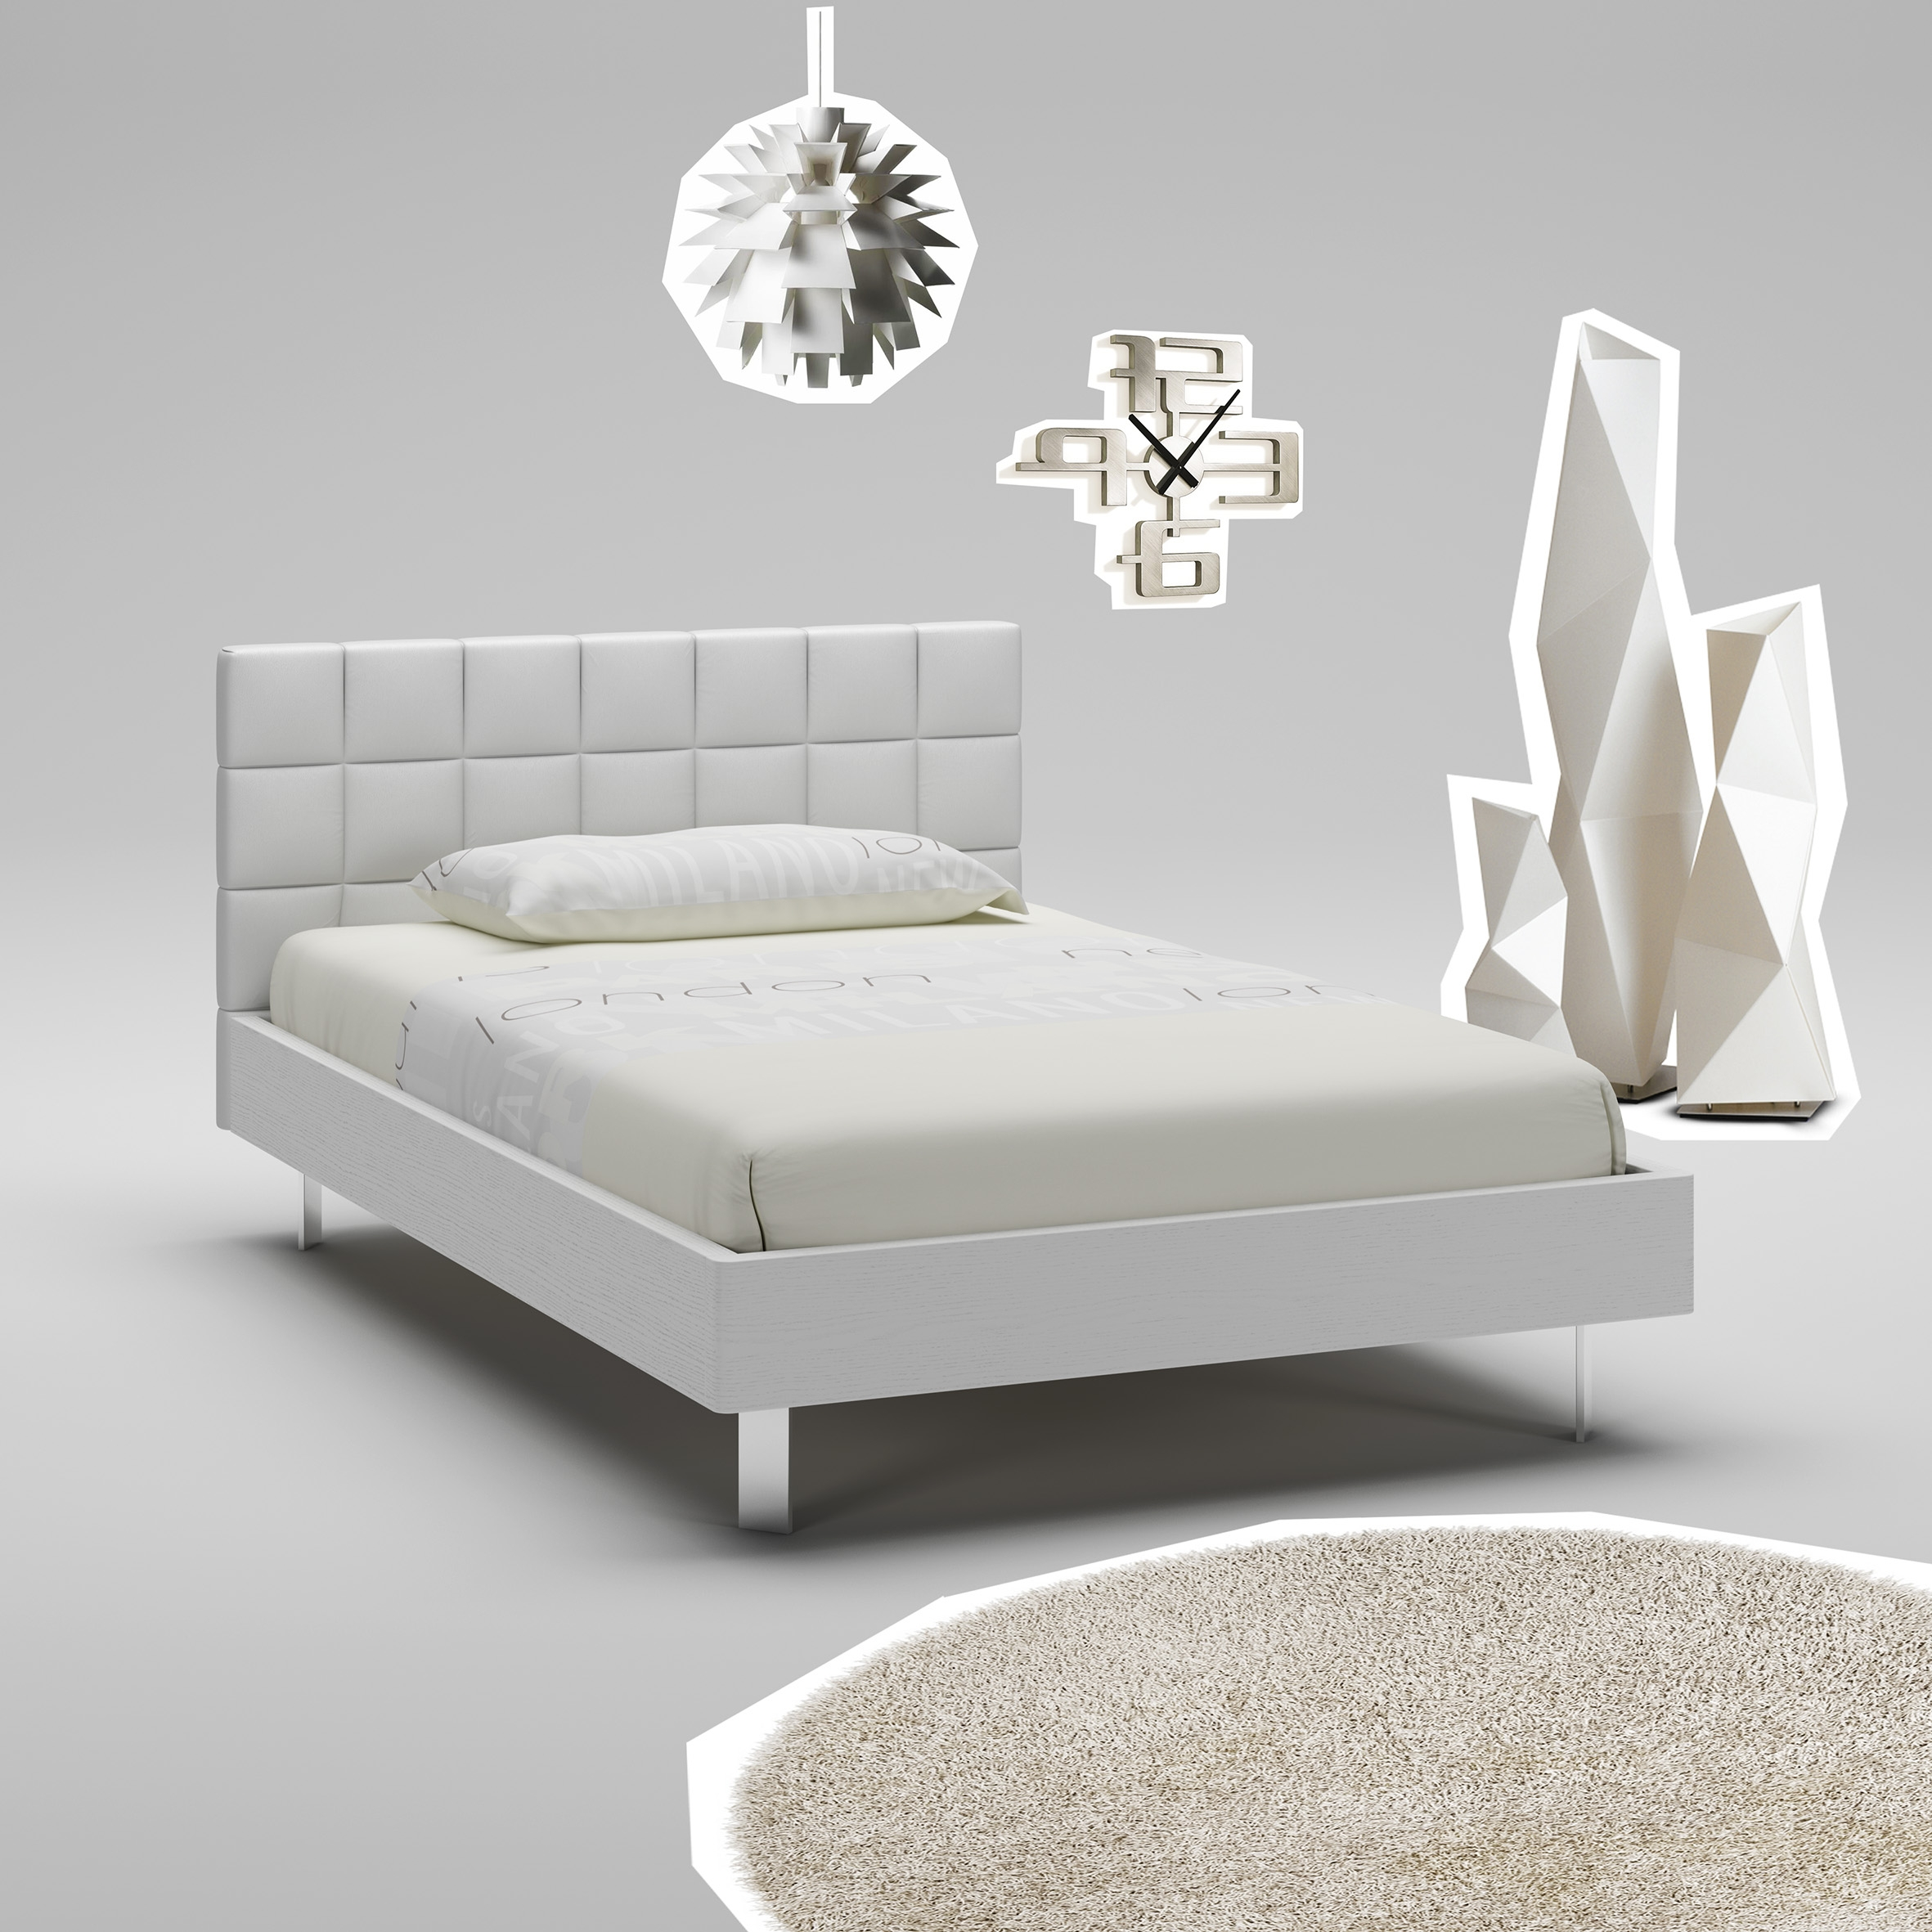 lit enfant blanc avec barriere. Black Bedroom Furniture Sets. Home Design Ideas